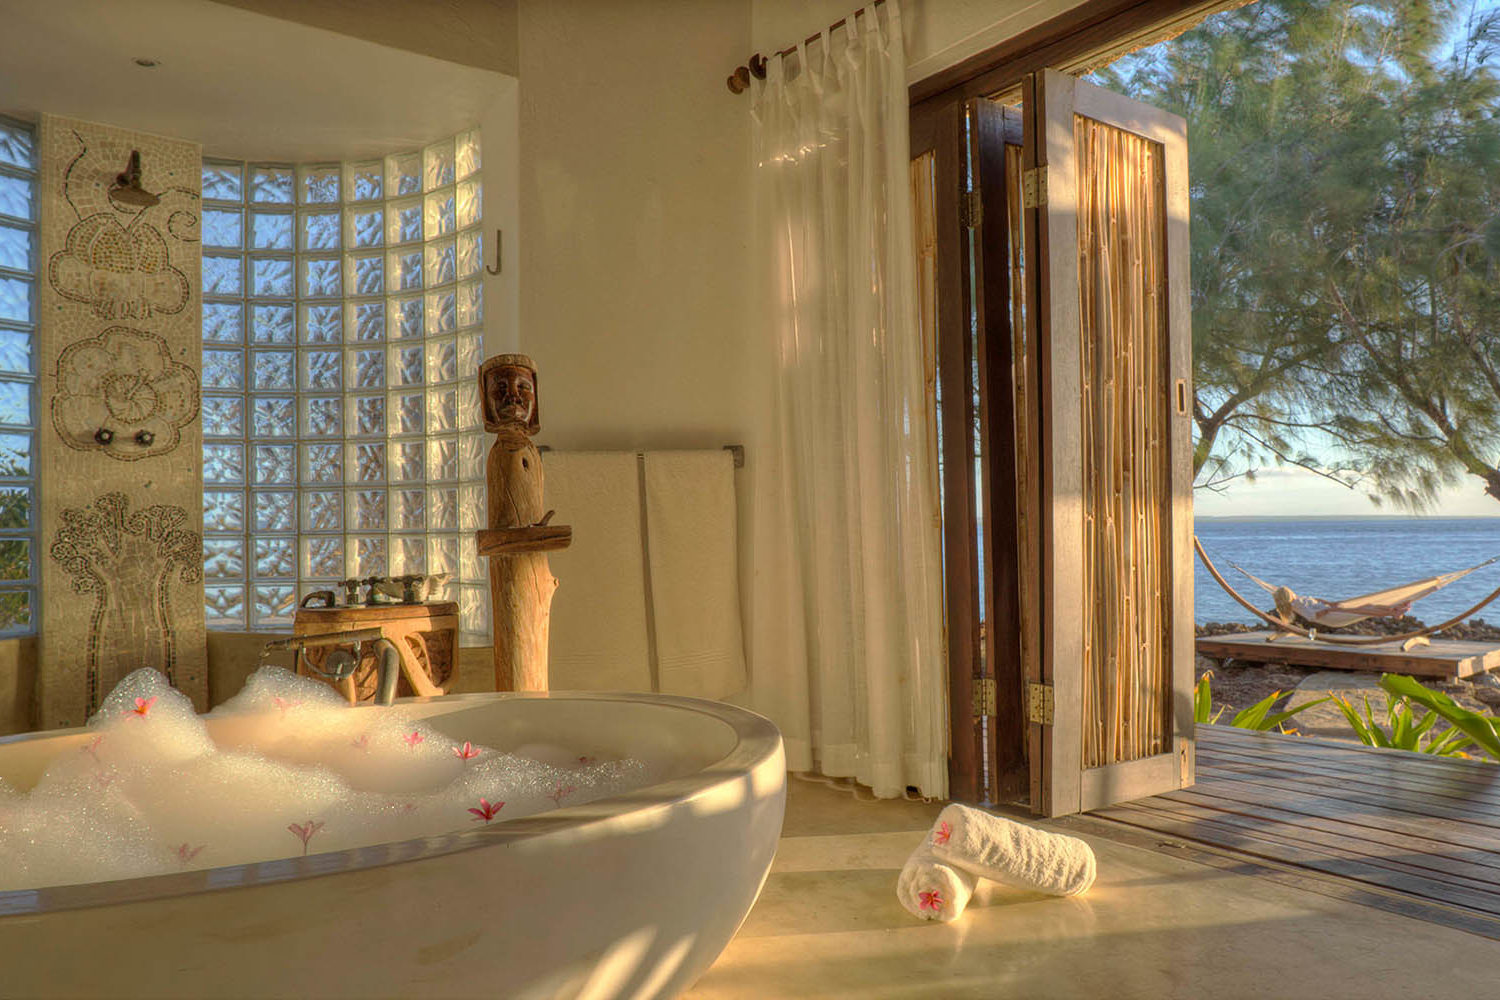 azura quilalea mozambique-lodges-zambia-in-style-quirimbas-archipelago-the-villas-view-with-bath